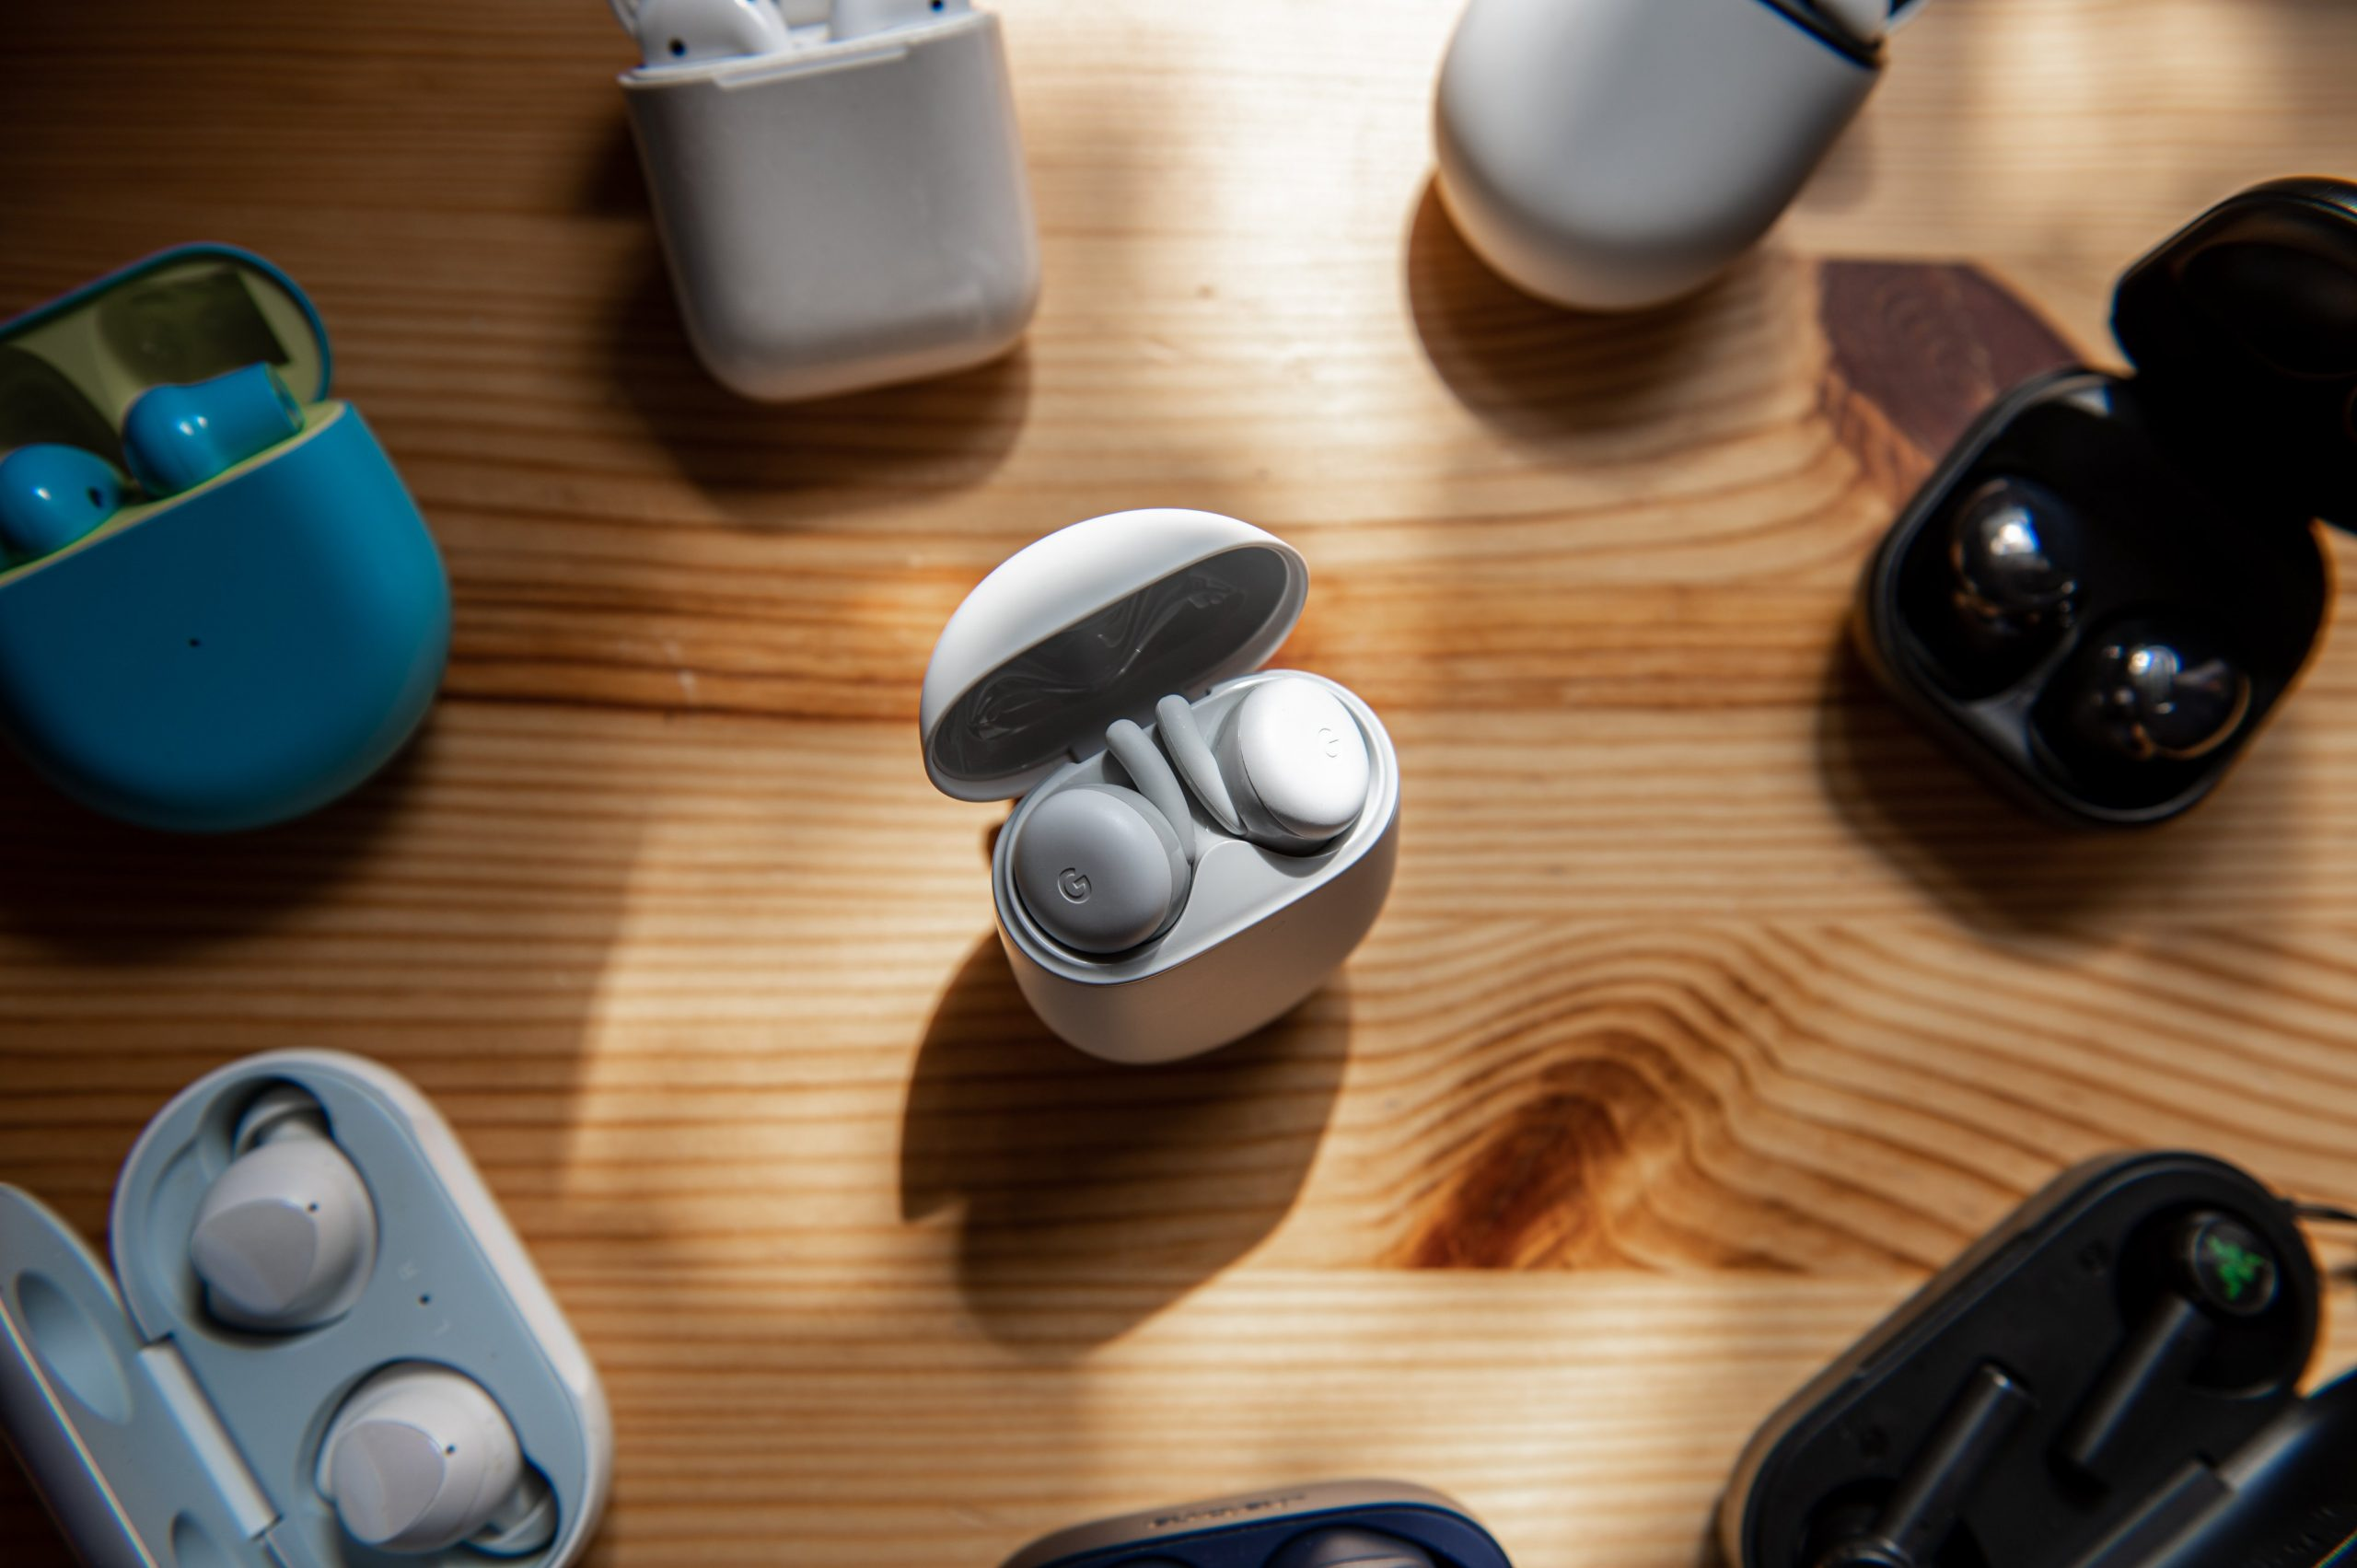 Google Pixel Buds A Series Announced To Come Under The Affordable Tag Of $99